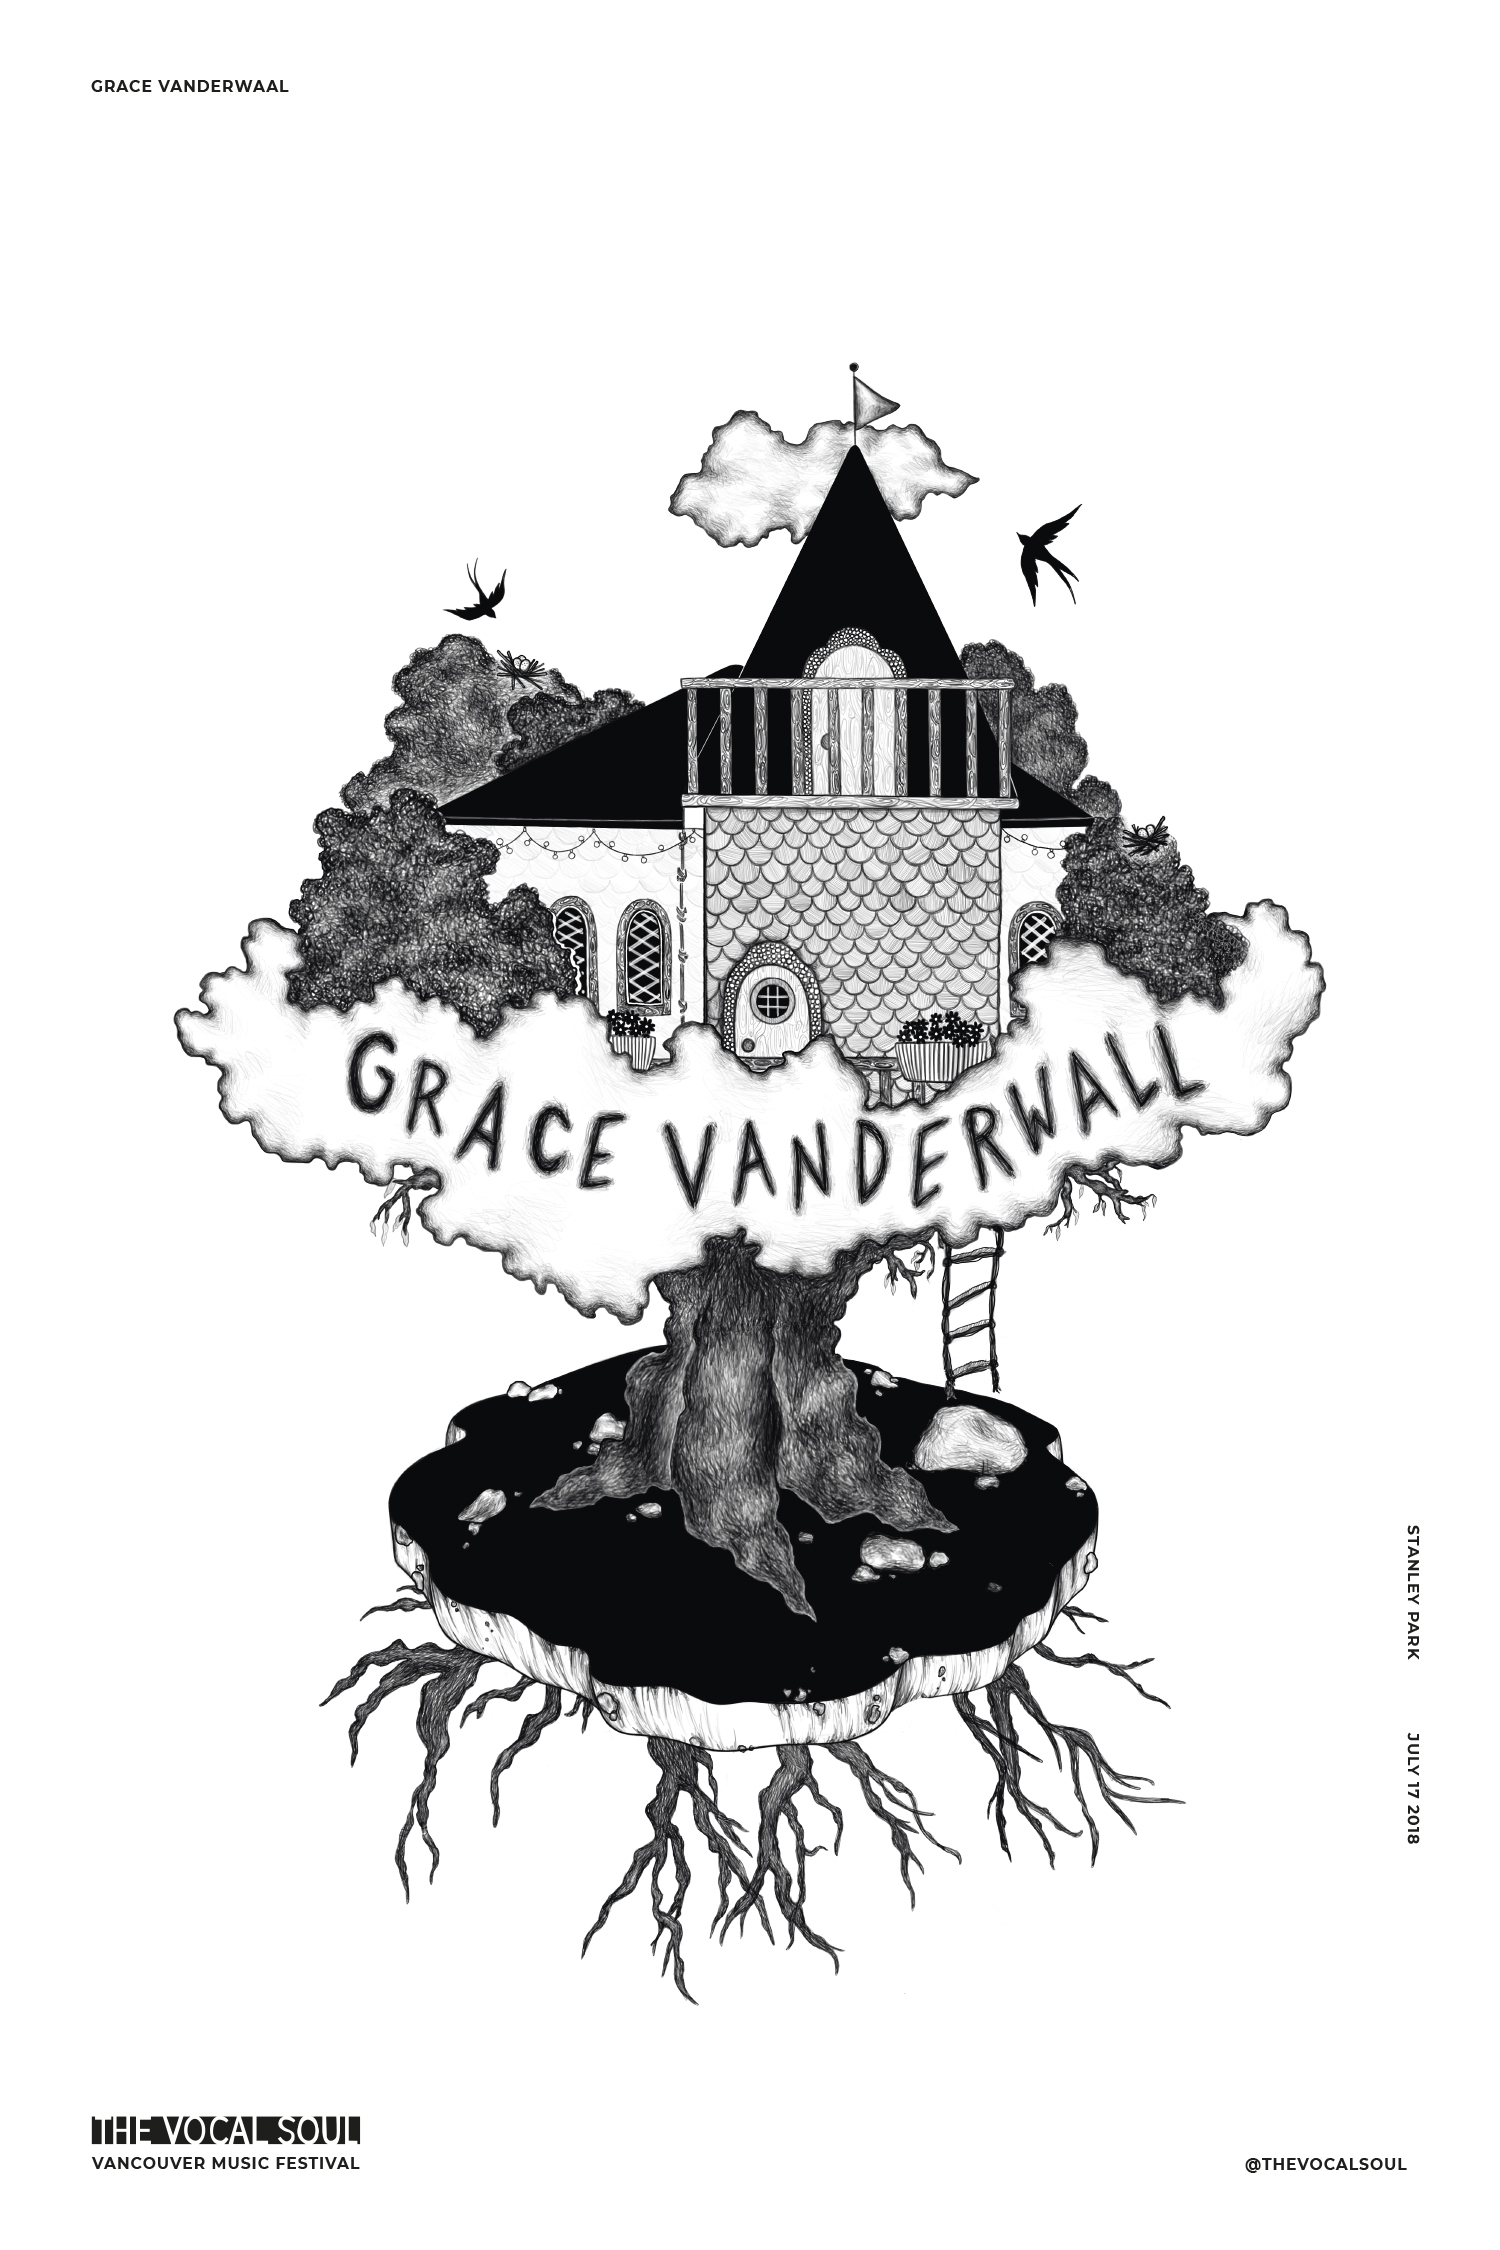 Grace Vanderwall, The Vocal Soul, Vancouver Music Festival illustrated poster by Emily Rose